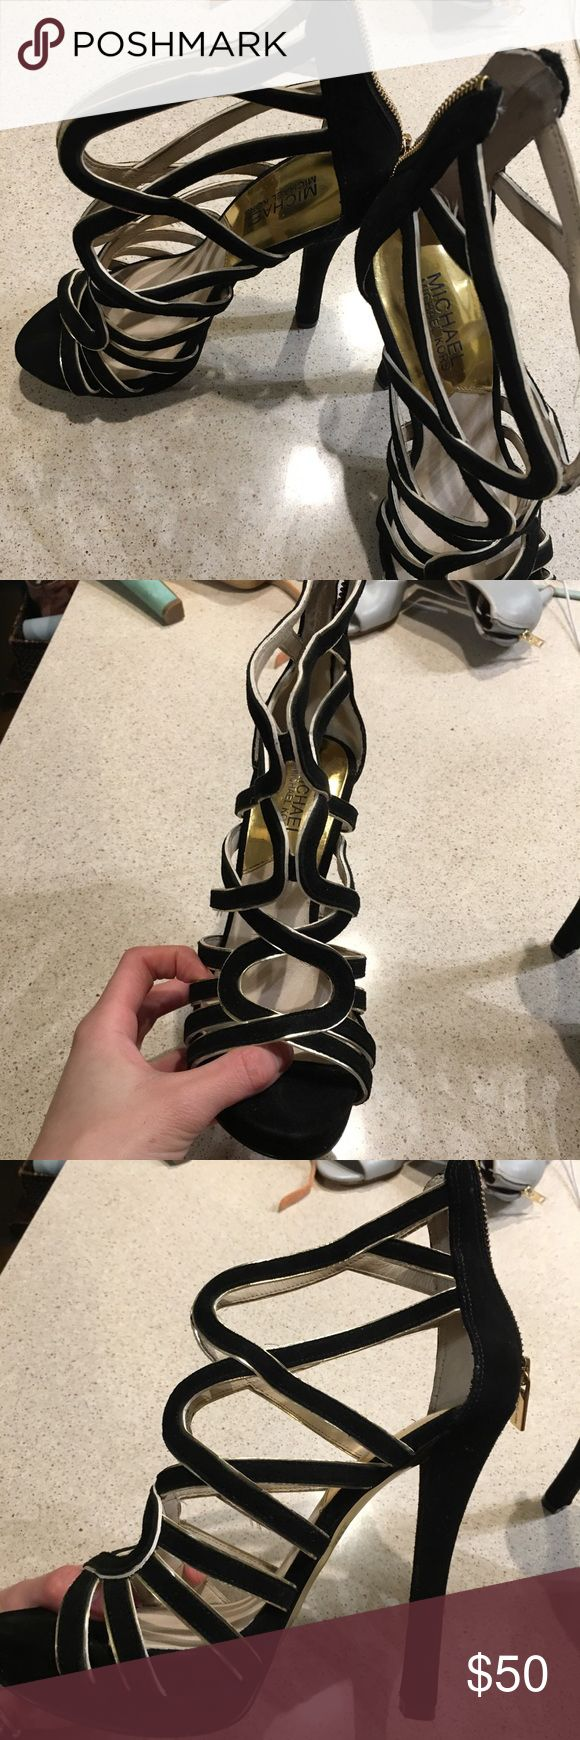 Michael kors black/gold leather heels Michael kors black/gold leather heels, size 7 I just posted lots of items today, take a look to see if you like other items too. I can bundle sell them. Price is negotiable! So just ask me, maybe we can agree to a price! Michael Kors Shoes Heels